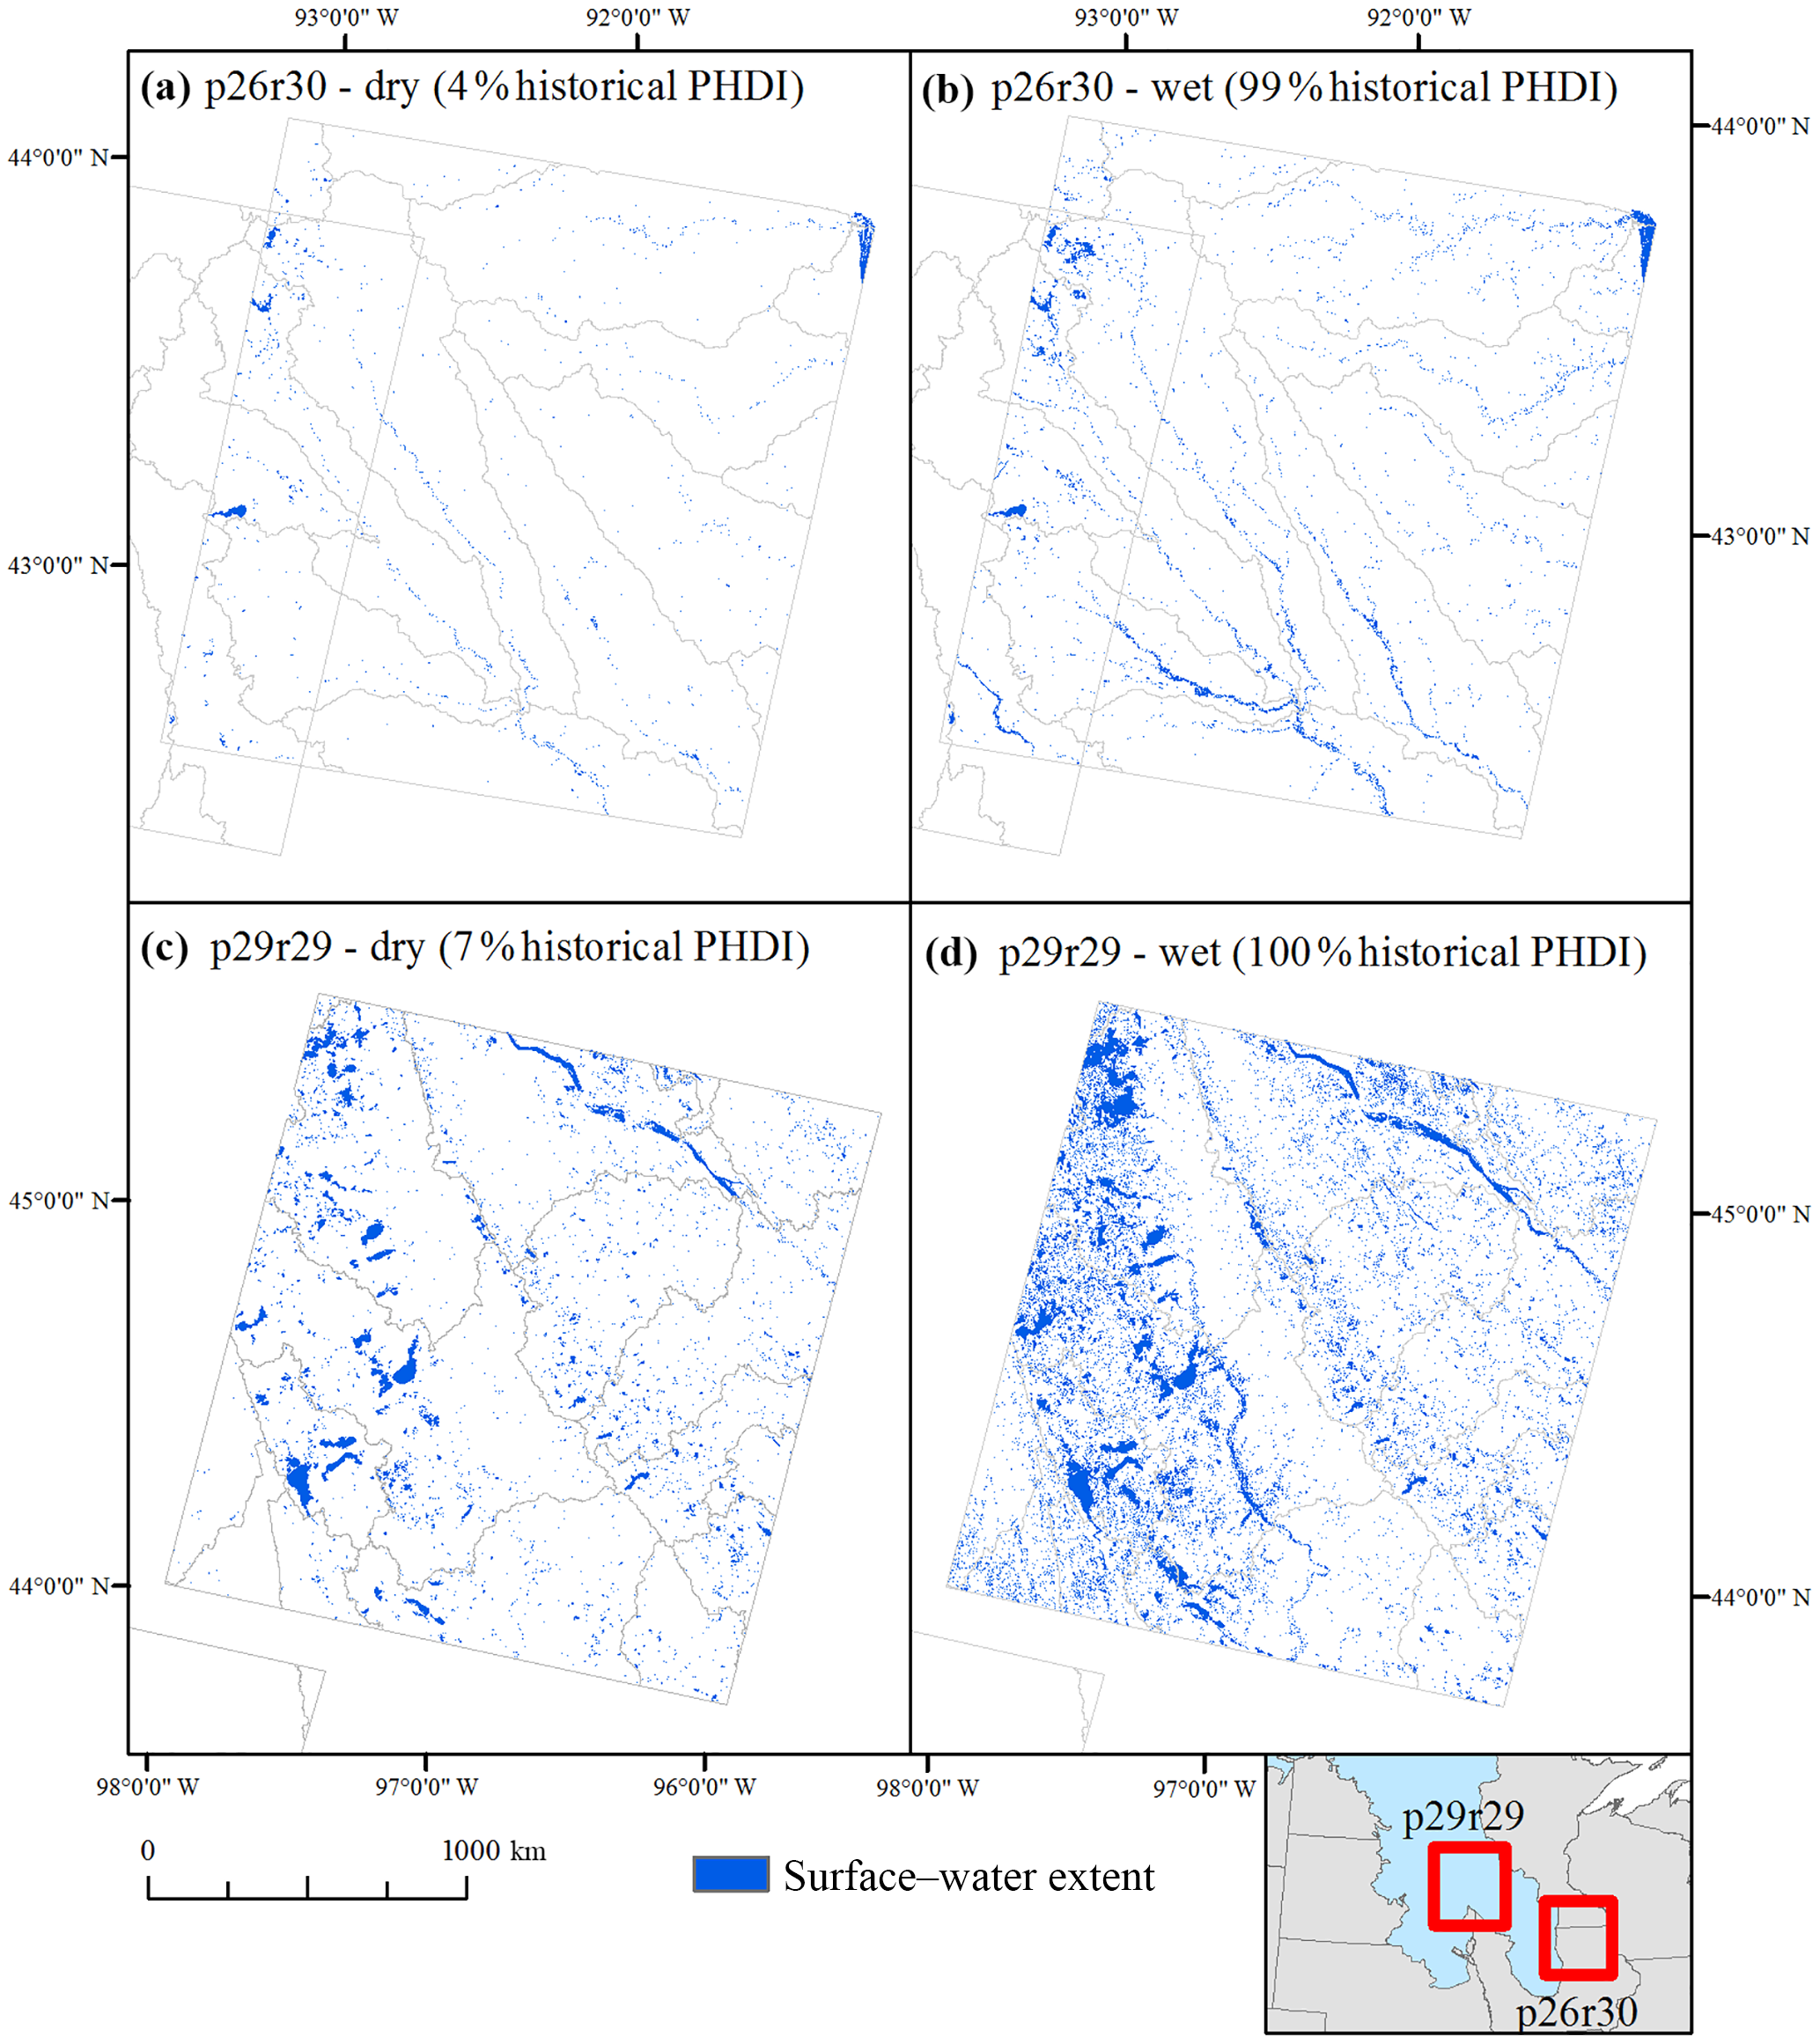 HESS - Wetlands inform how climate extremes influence